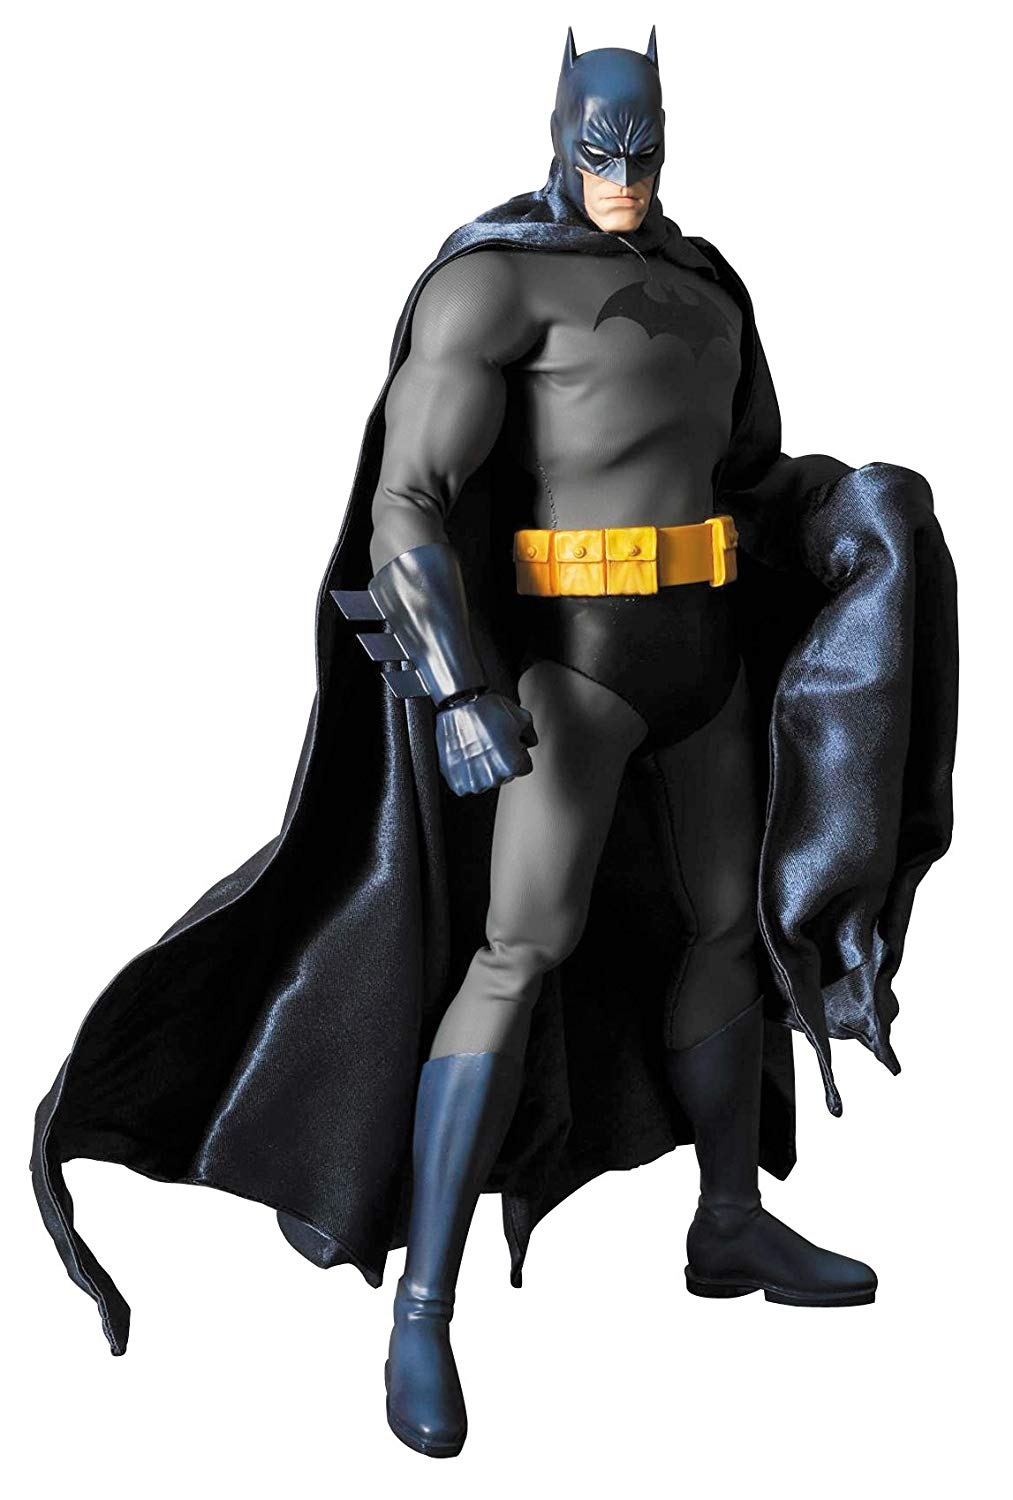 Boneco Batman: Hush Real Action Heroes No.646 (Escala 1/6) - Medicom